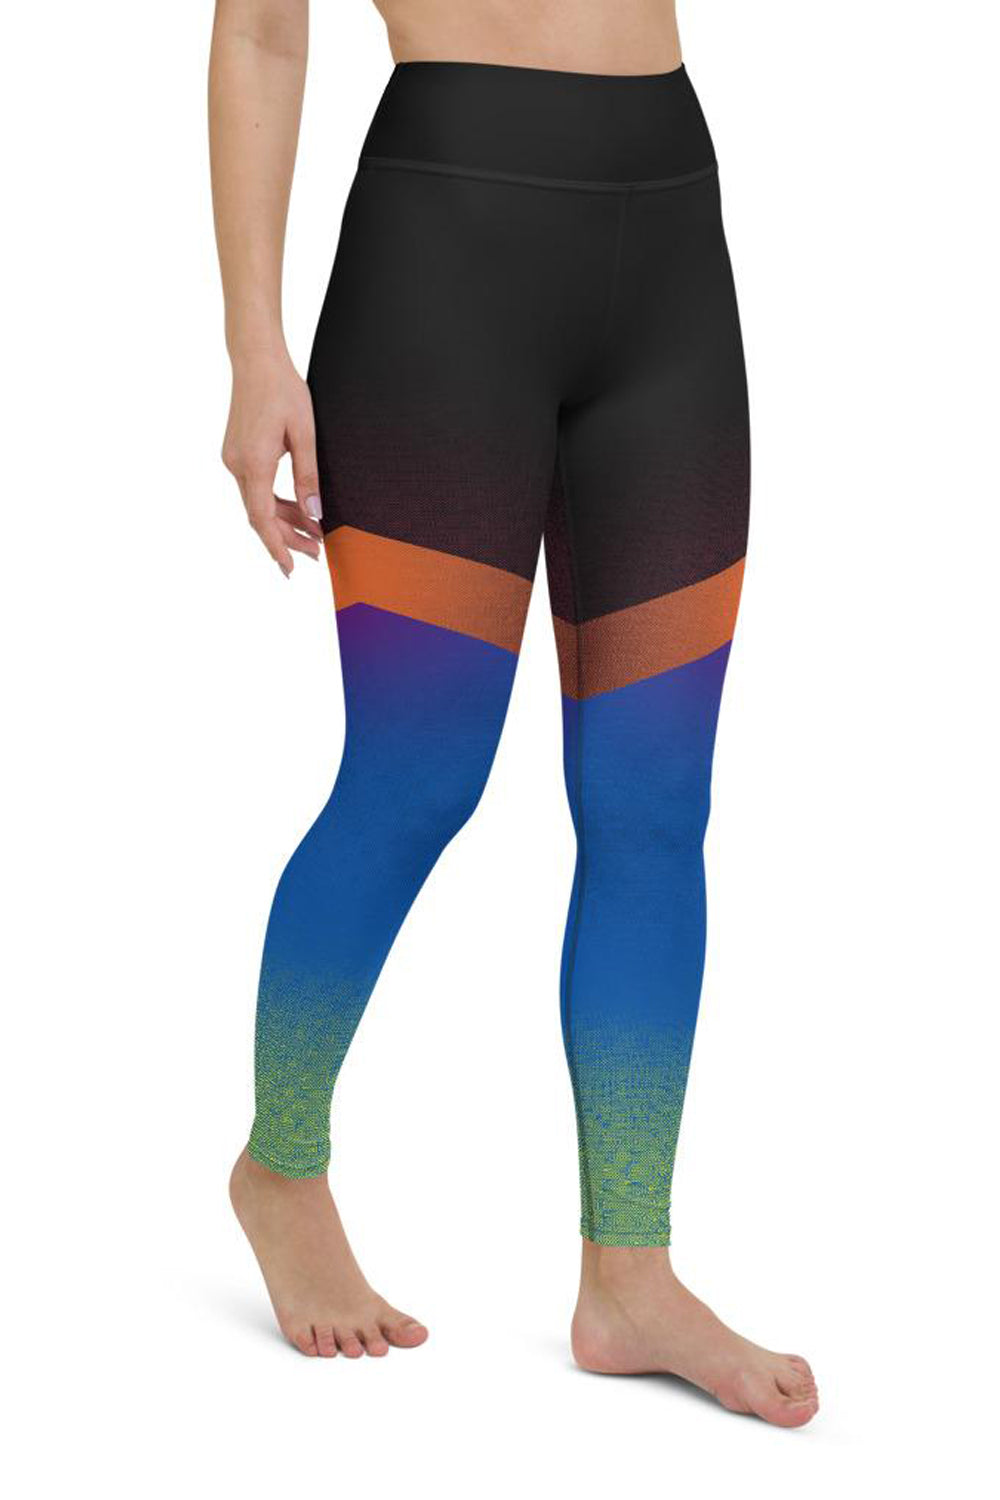 Shine Blue Yoga Leggings